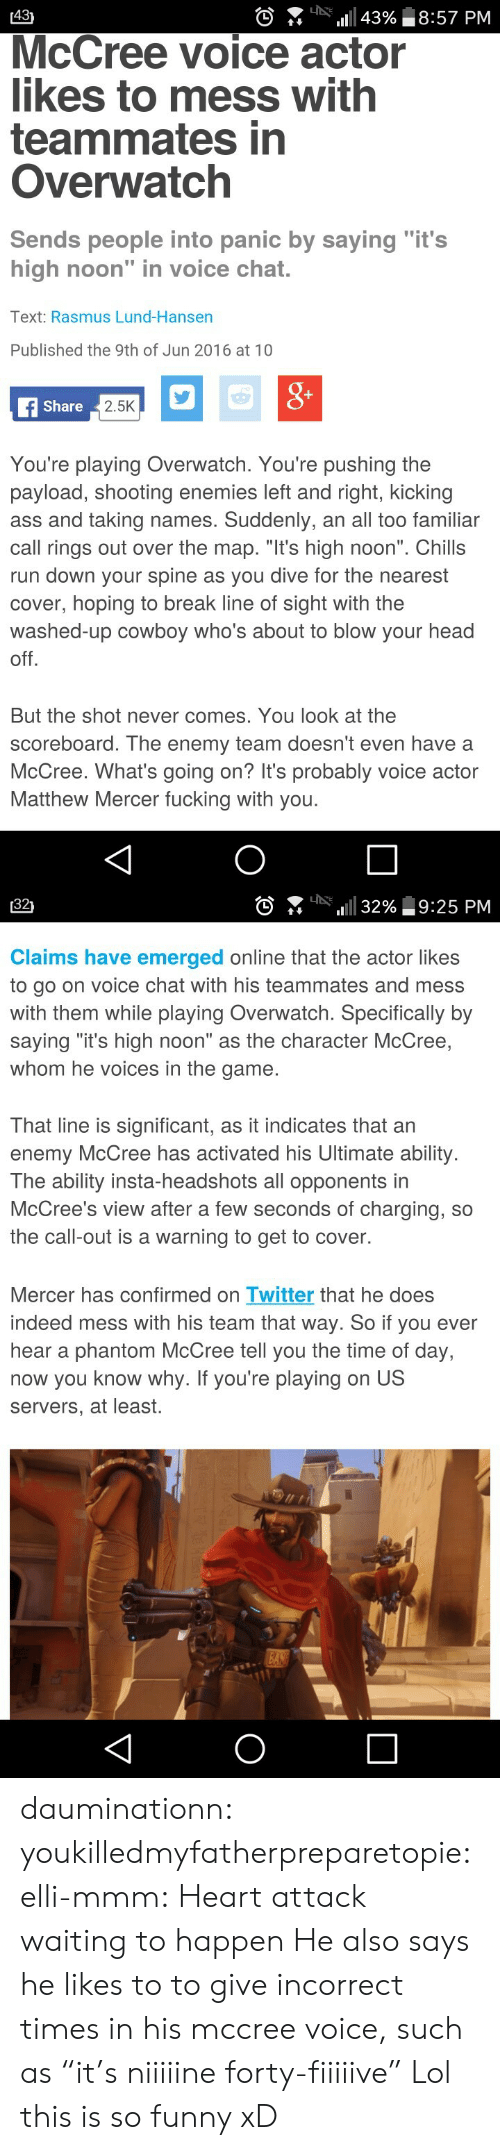 """Kicking Ass: 431  0  :n-. 111 43%, 18:57 PM  McCree voice actor  likes to mess with  teammates in  Overwatch  Sends people into panic by saving """"it's  high noon"""" in voice chat.  Text: Rasmus Lund-Hansen  Published the 9th of Jun 2016 at 10  Share  2.5K  You're playing Overwatch. You're pushing the  payload, shooting enemies left and right, kicking  ass and taking names. Suddenly, an all too familiar  call rings out over the map. """"It's high noon"""". Chills  run down your spine as you dive for the nearest  cover, hoping to break line of sight with the  washed-up cowboy who's about to blow your head  off  But the shot never comes. You look at the  scoreboard. The enemy team doesn't even have a  McCree. What's going on? It's probably voice actor  Matthew Mercer fucking with you   [32)  。.. 니  1111 32%し9:25 PM  Claims have emerged online that the actor likes  to go on voice chat with his teammates and mess  with them while playing Overwatch. Specifically by  saying """"it's high noon"""" as the character McCree,  whom he voices in the game.  That line is significant, as it indicates that an  enemy McCree has activated his Ultimate ability.  The ability insta-headshots all opponents in  McCree's view after a few seconds of charging, so  the call-out is a warning to get to cover.  Mercer has confirmed on Twitter that he does  indeed mess with his team that way. So if you ever  hear a phantom McCree tell you the time of day,  now you know why. If you're playing on US  servers, at least. dauminationn:  youkilledmyfatherpreparetopie:  elli-mmm:  Heart attack waiting to happen  He also says he likes to to give incorrect times in his mccree voice, such as """"it's niiiiine forty-fiiiiive""""   Lol this is so funny xD"""